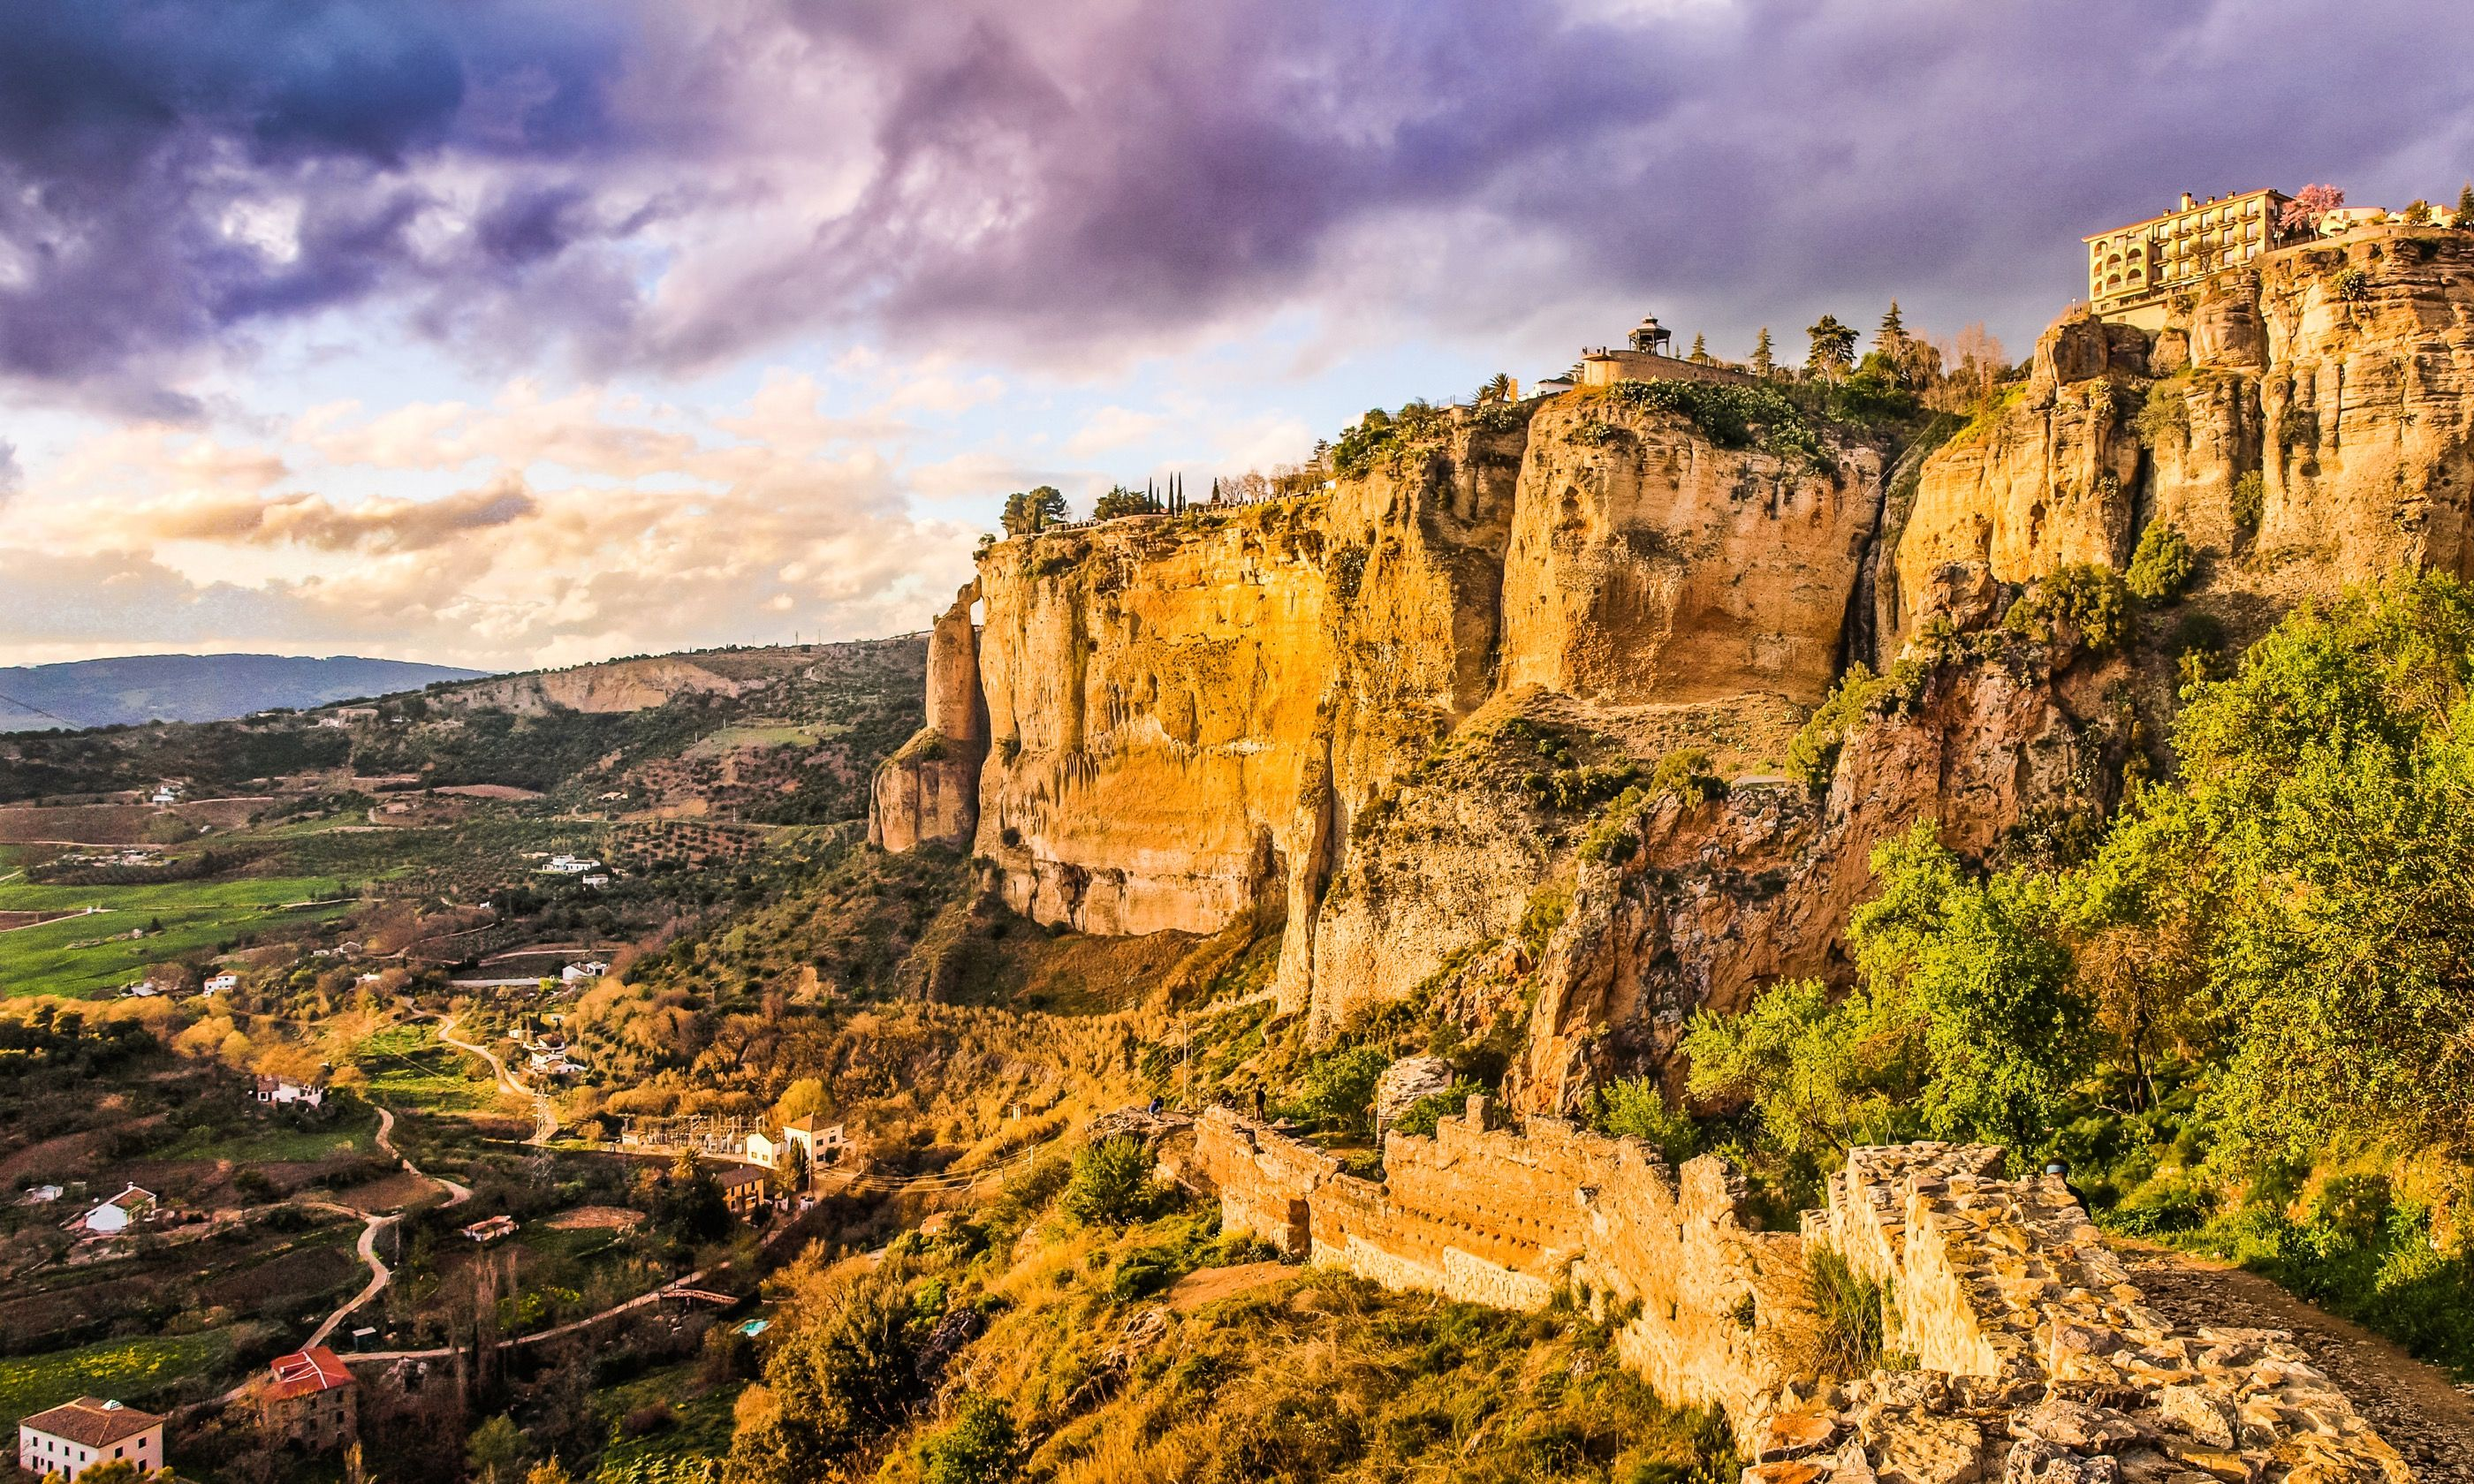 All roads lead to Ronda (Dreamstime)